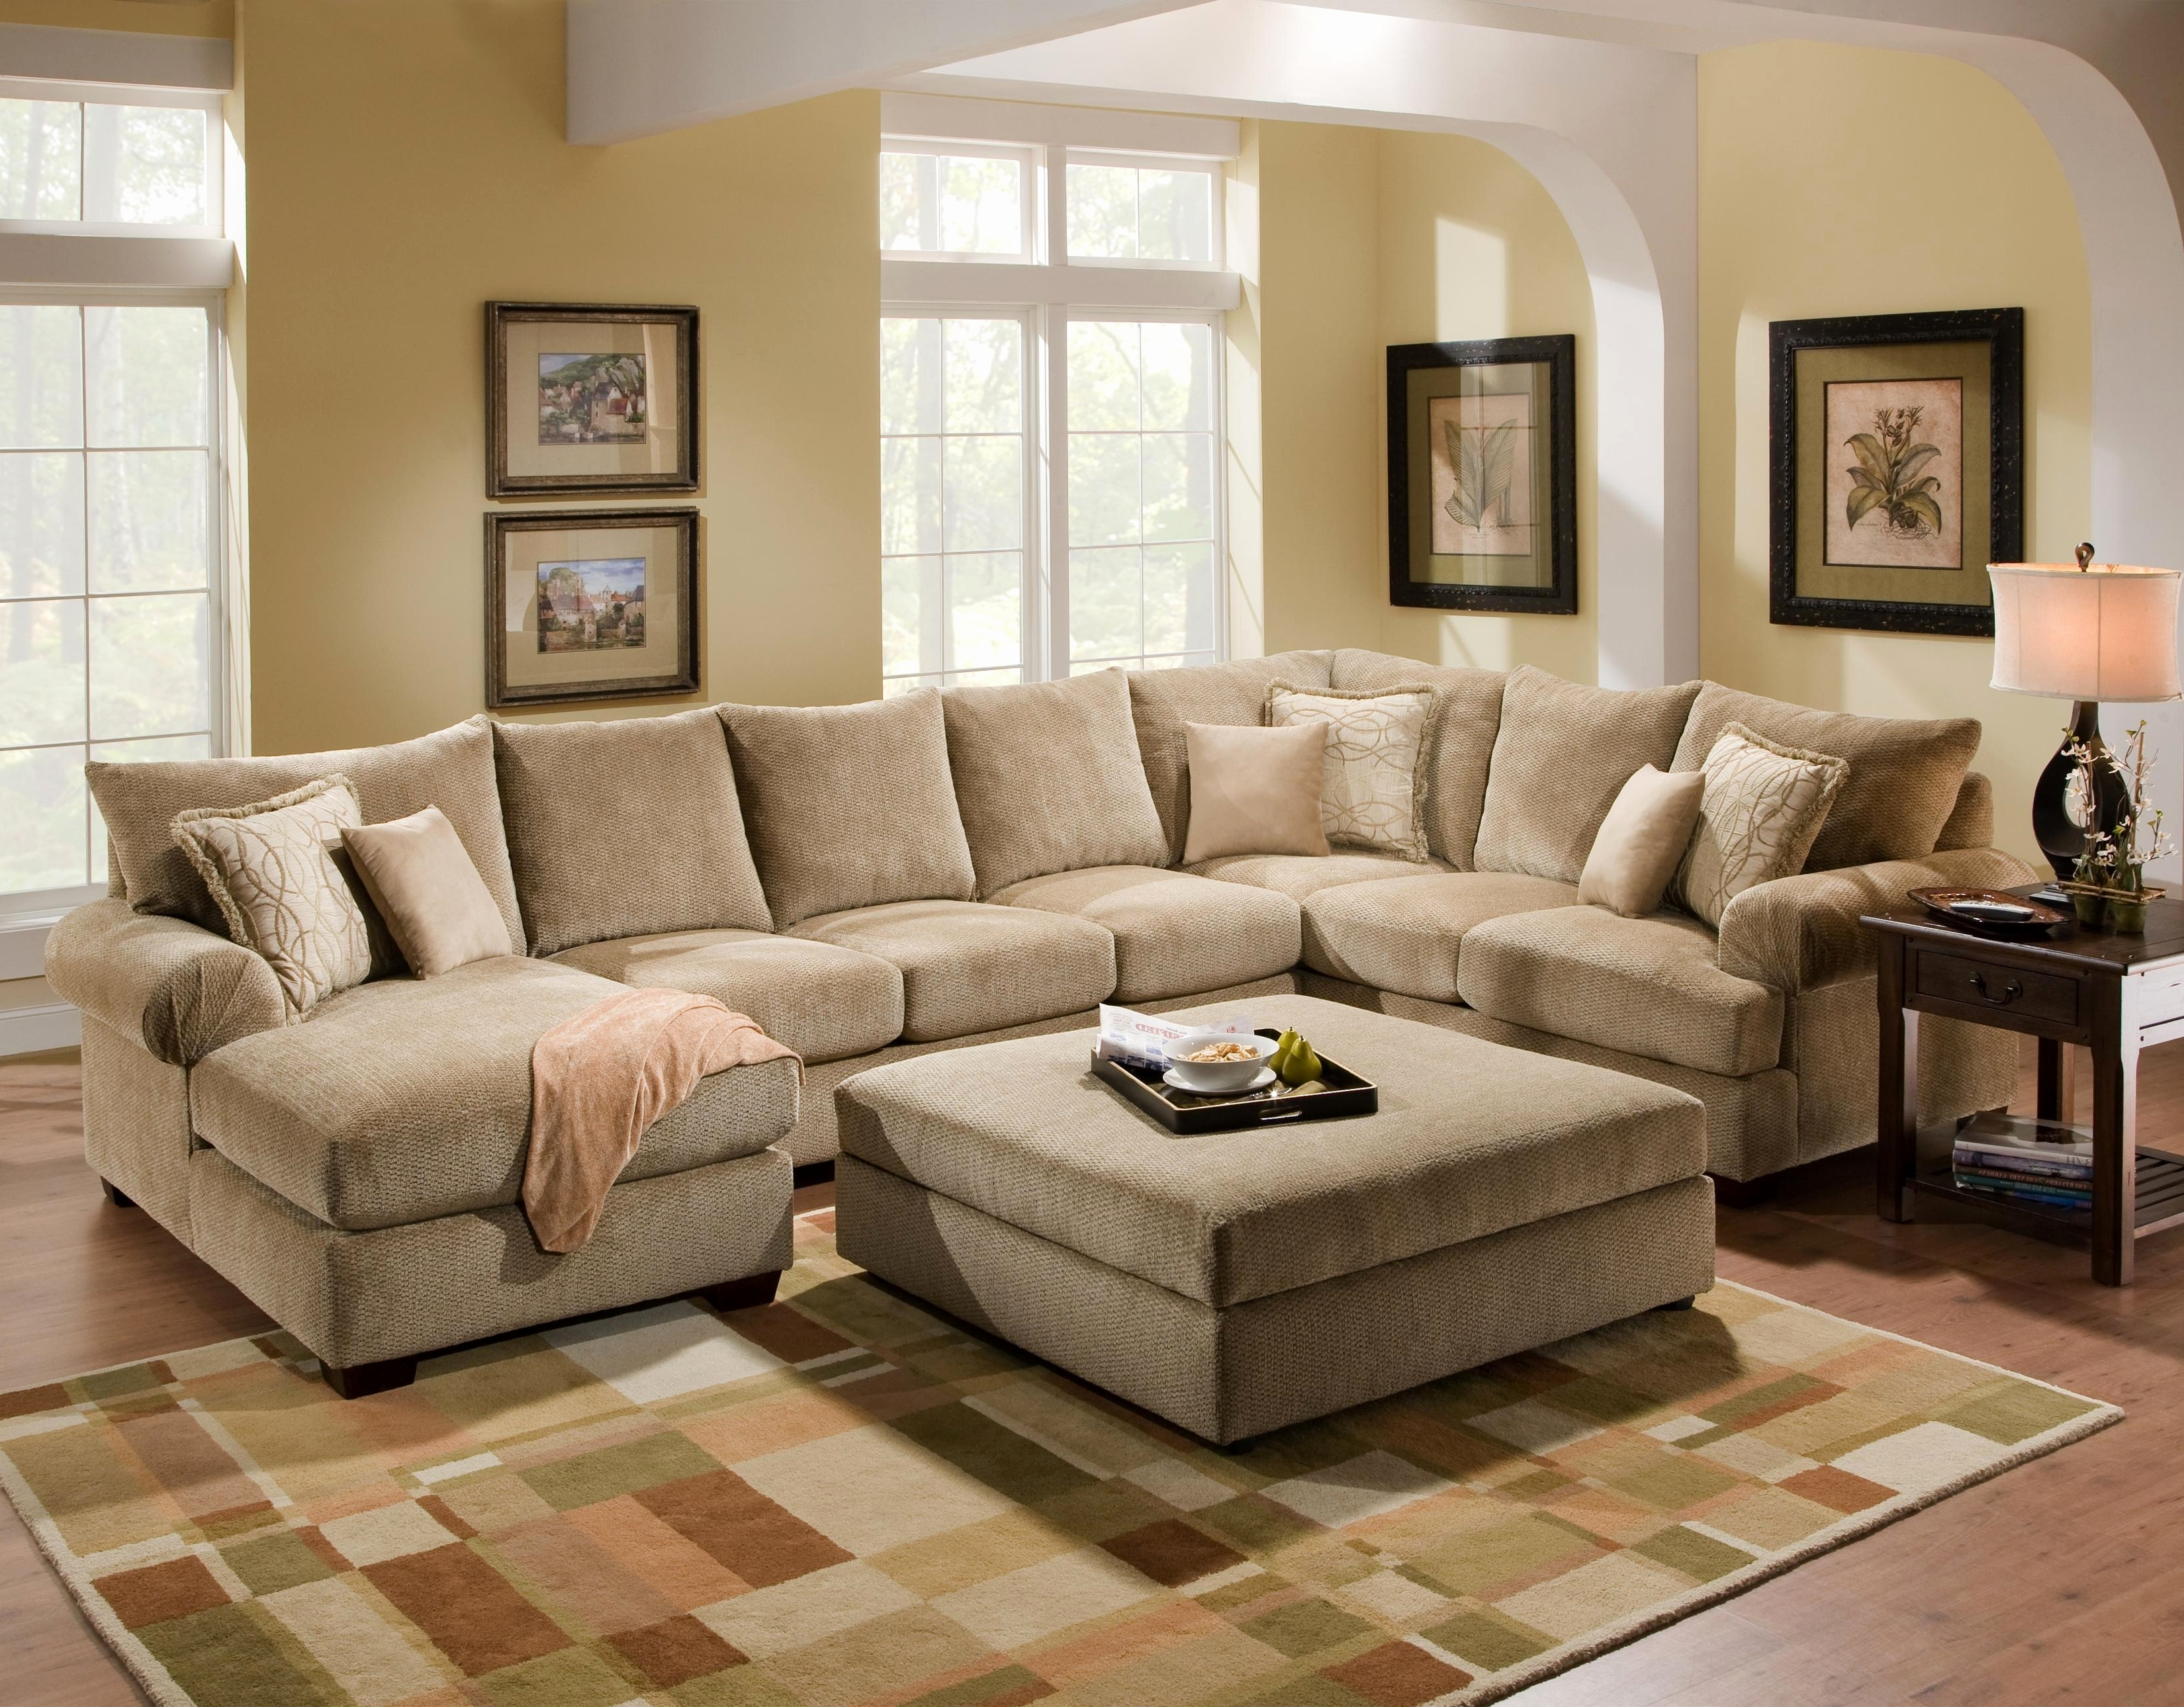 Well Known Sectional Sofa Lancaster Pa – Blitz Blog With Regard To Lancaster Pa Sectional Sofas (View 2 of 15)